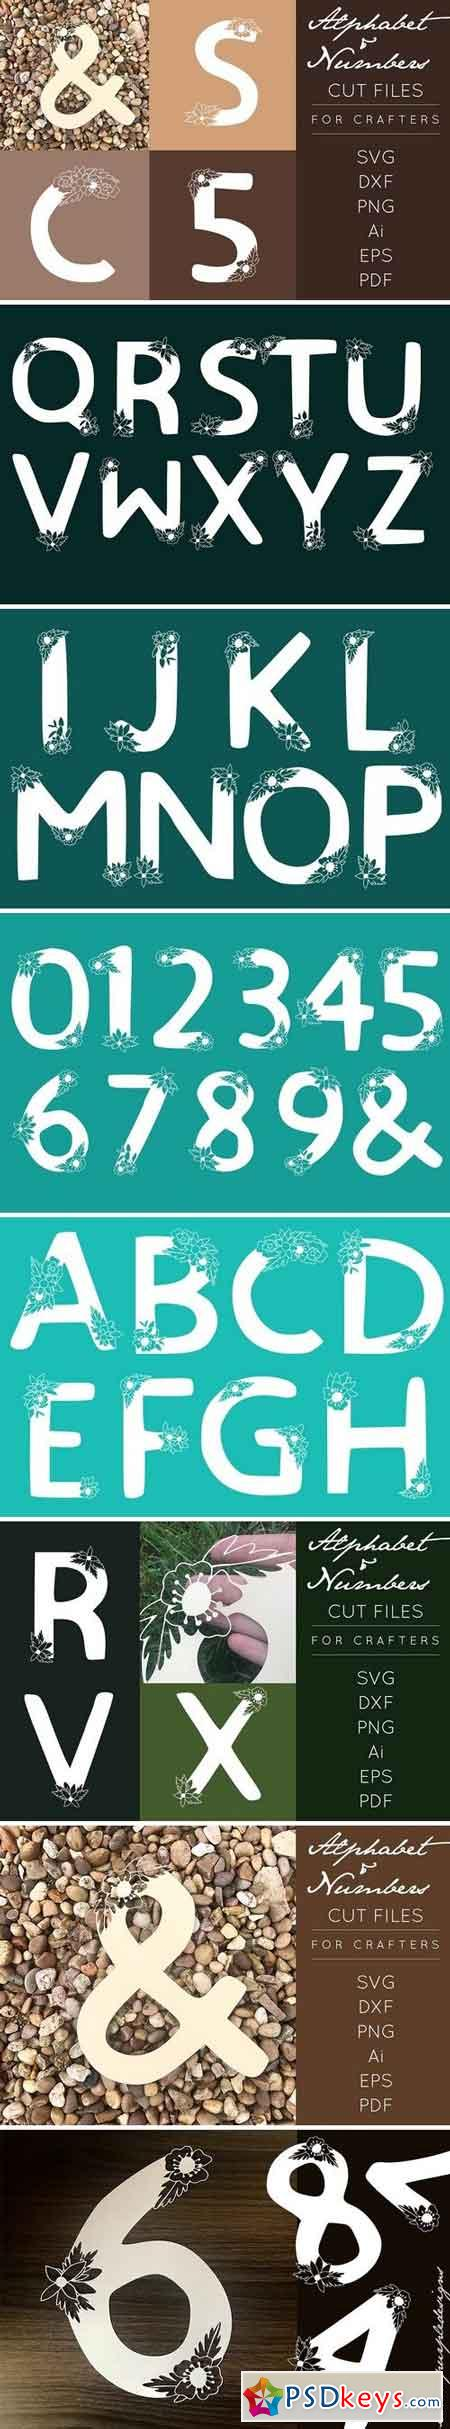 Alphabet Cut Files DXF SVG EPS 1554229